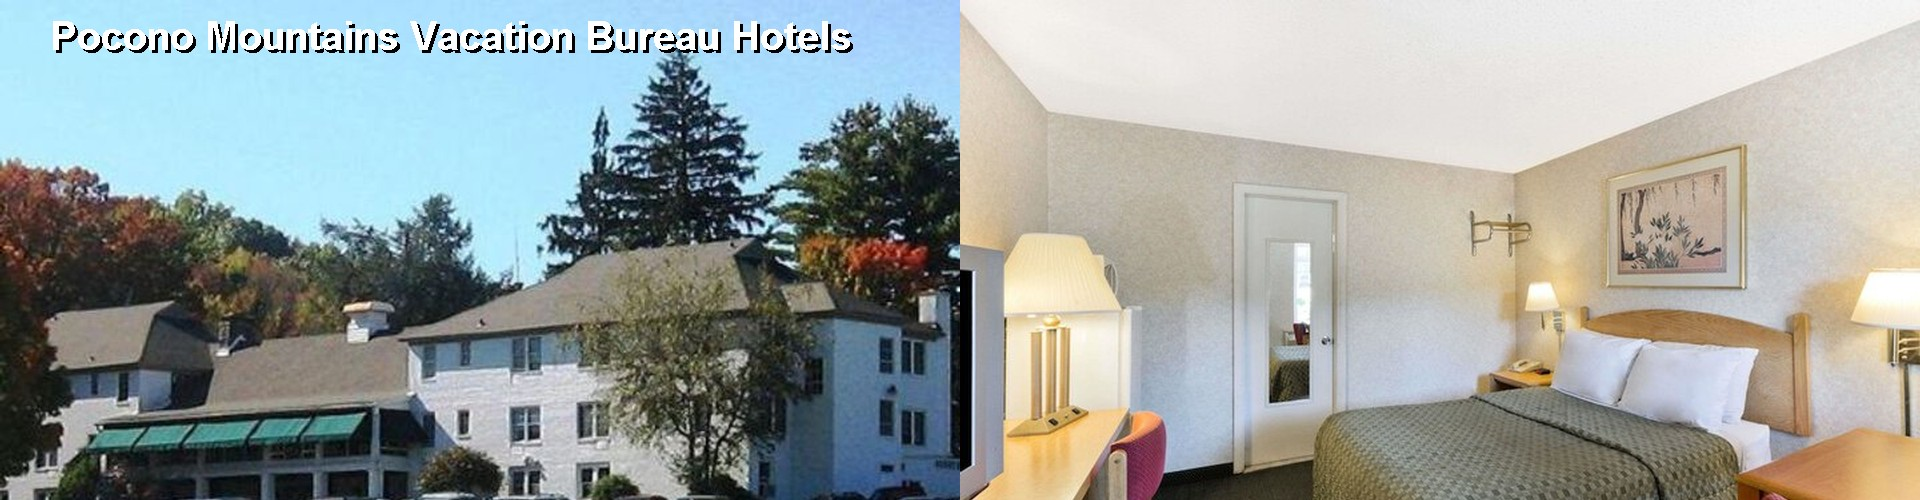 4 Best Hotels near Pocono Mountains Vacation Bureau